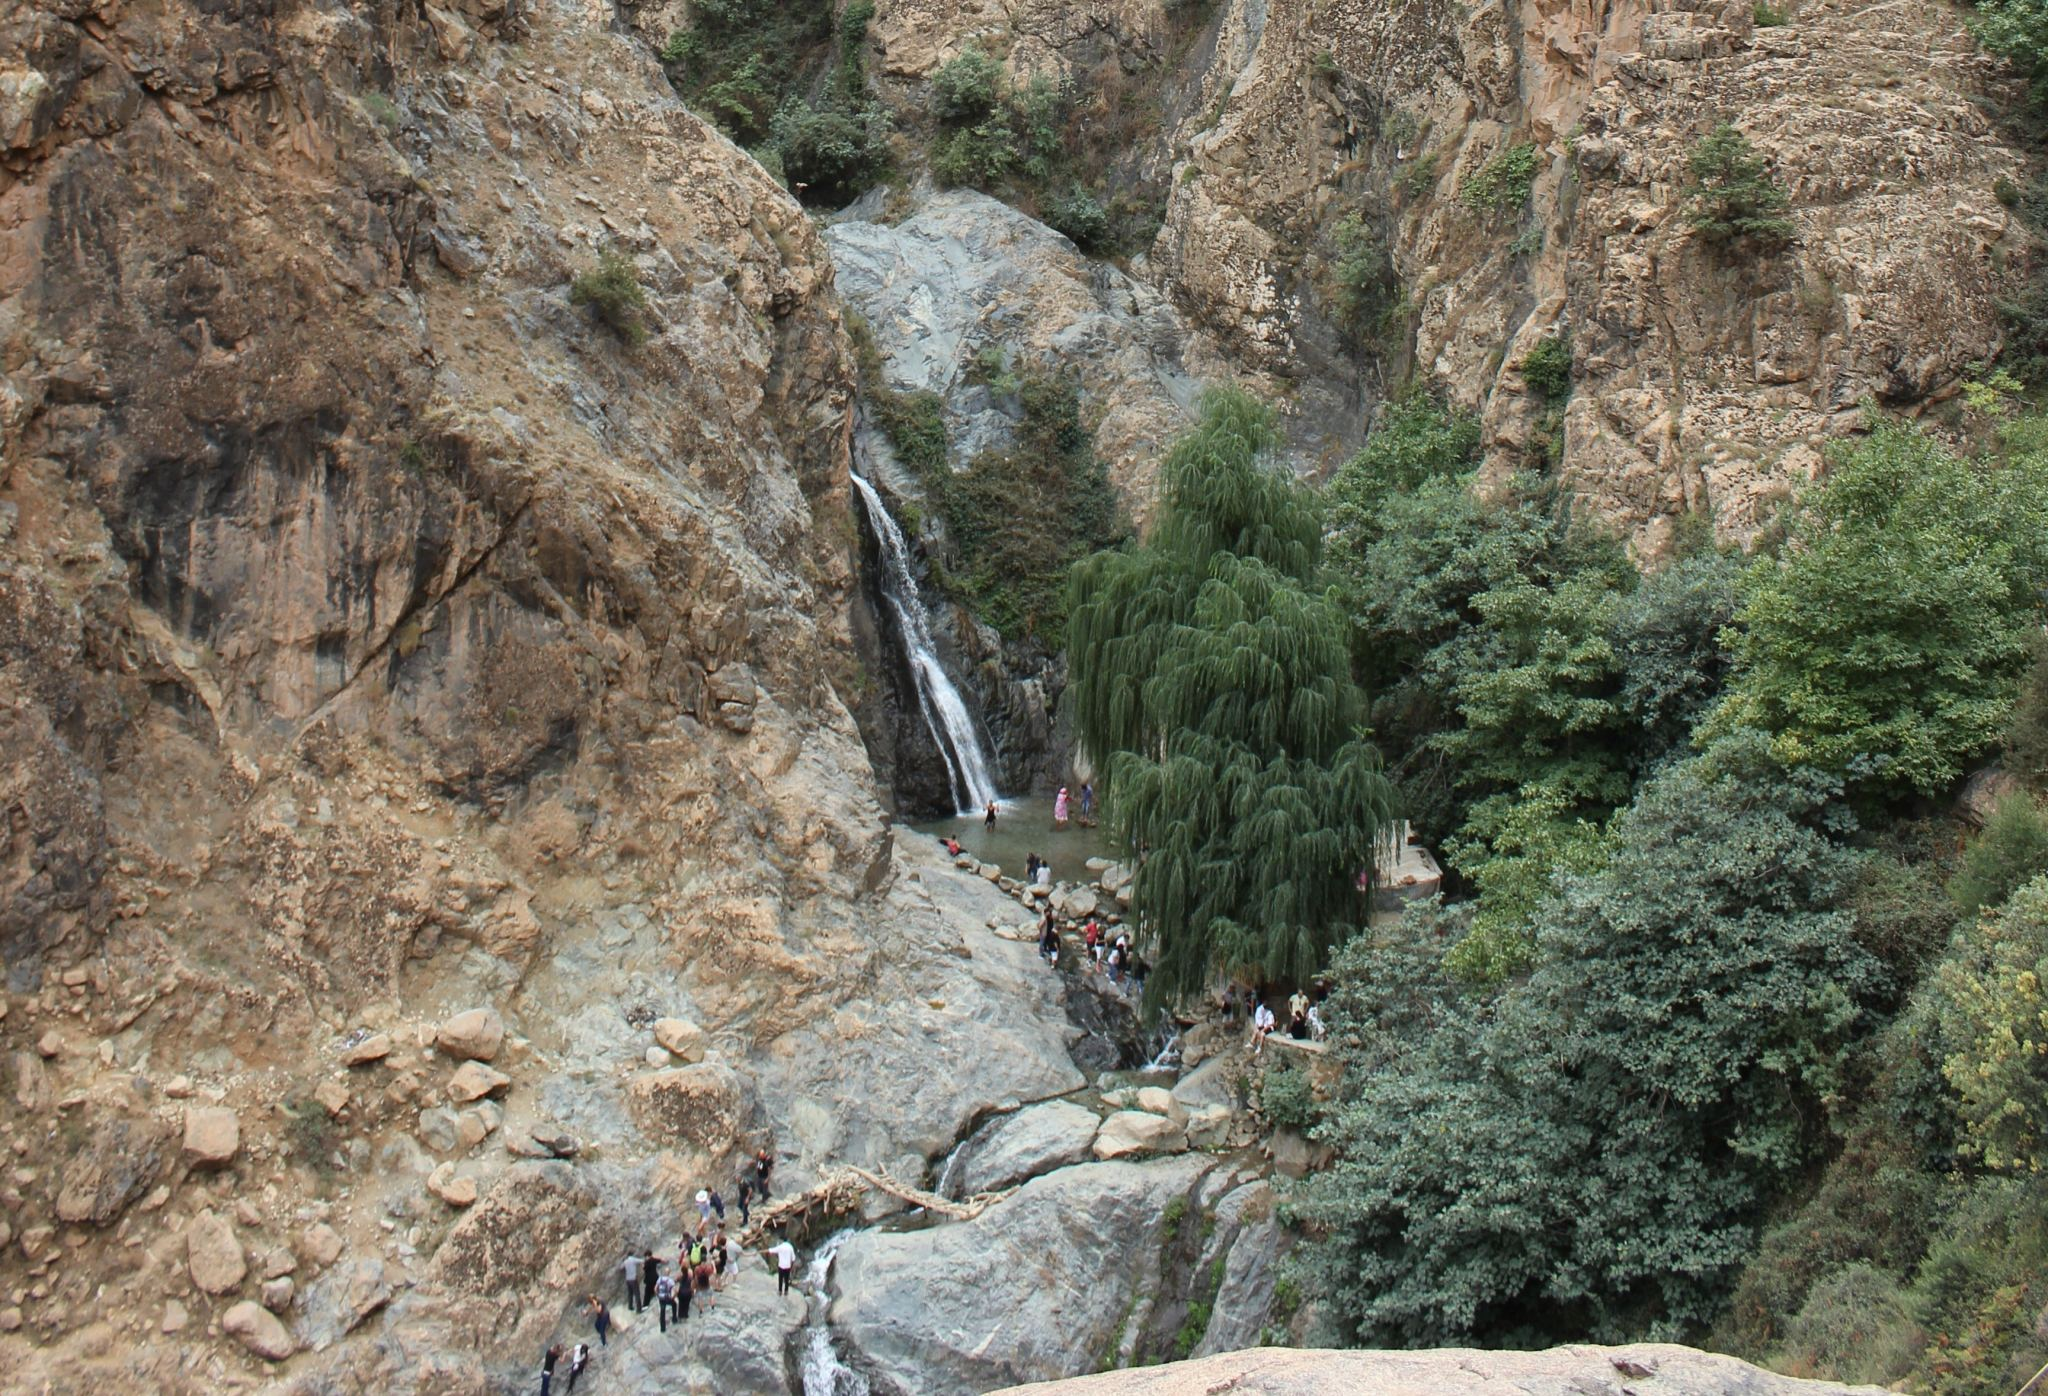 Setti Fatma waterfalls